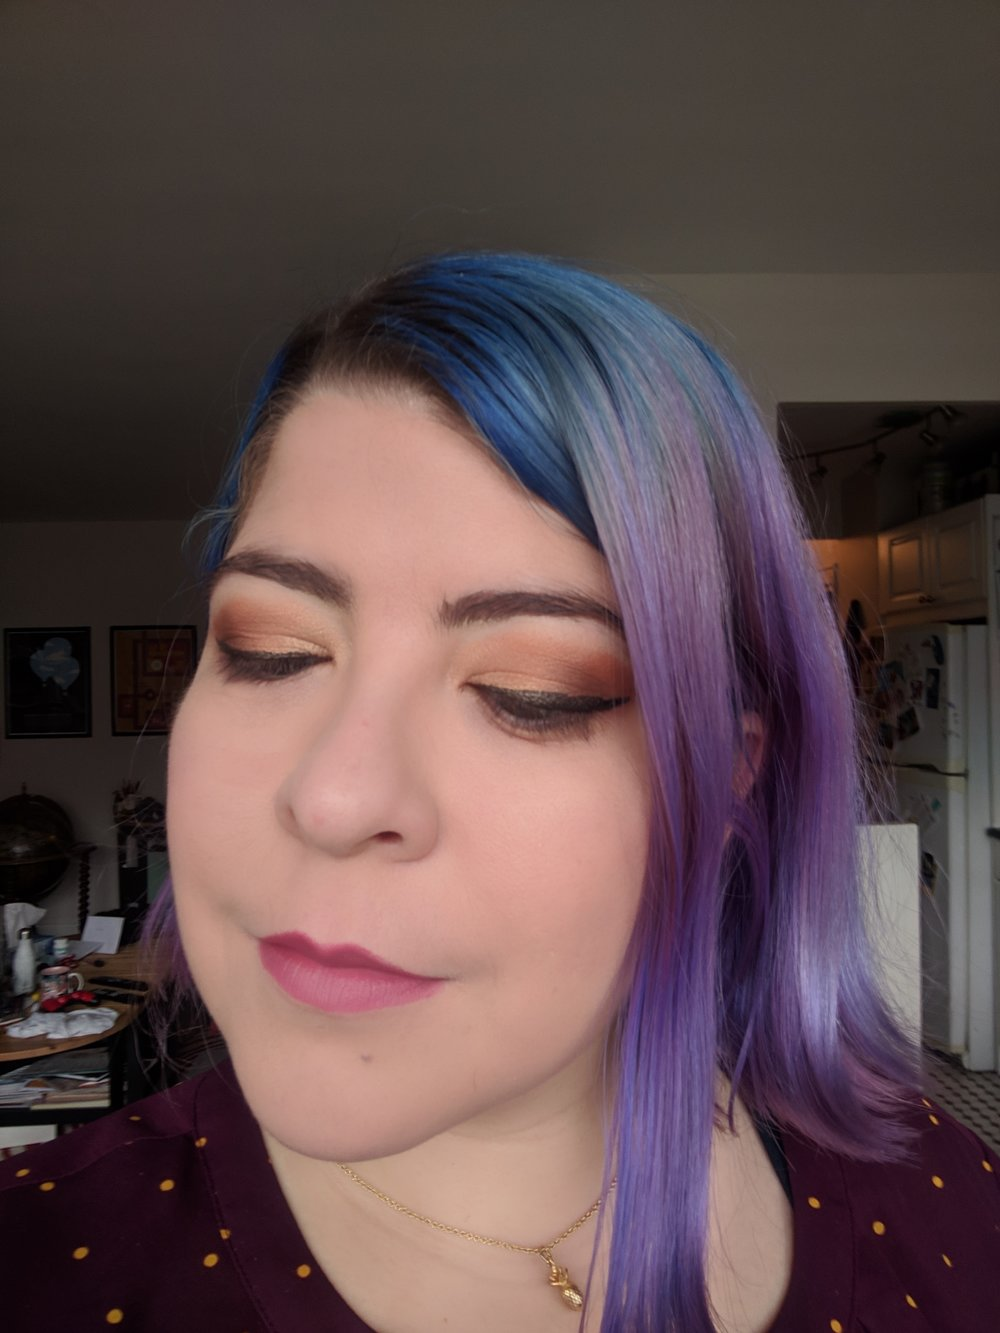 Too Faced Peanut Butter & Jelly Palette, Too Faced Sugarbomb Blush, Charlotte Tilbury Secret Salma Lipstick